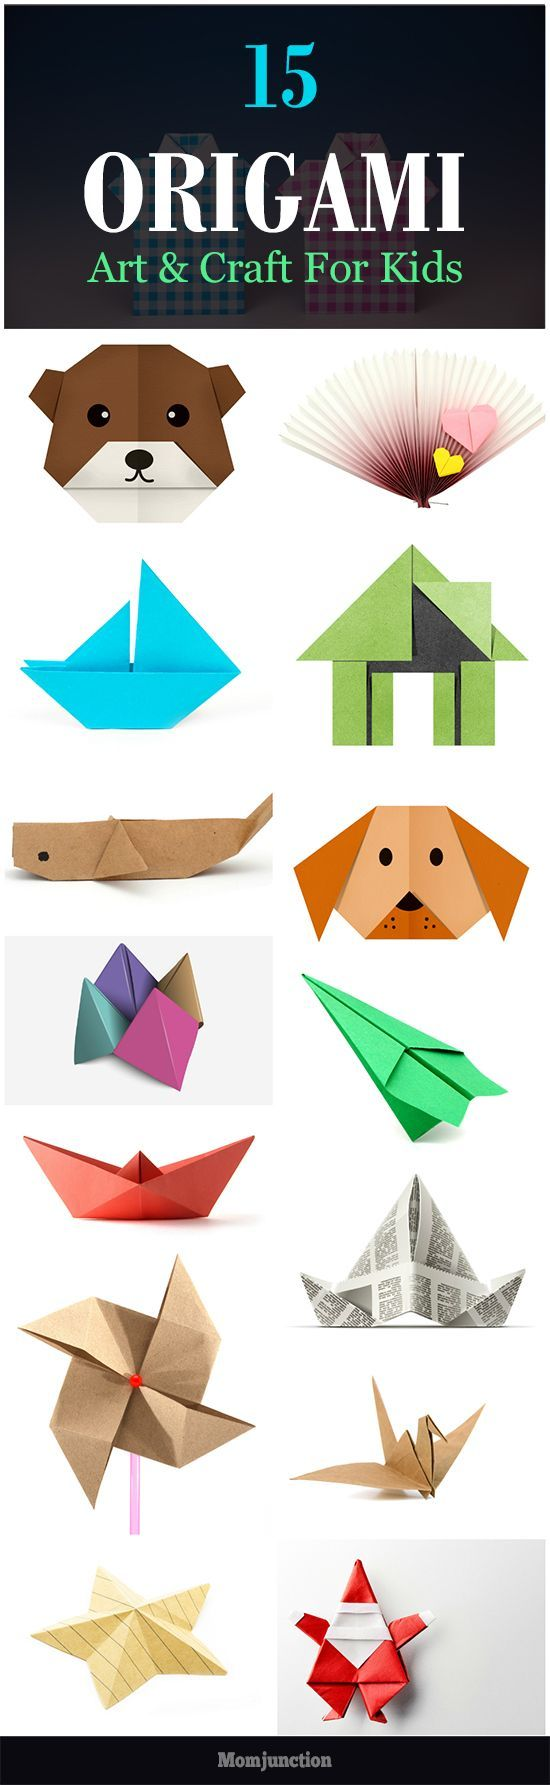 Arts And Crafts Ideas For Kids With Paper Part - 46: Top 15 Paper Folding Or Origami Crafts For Kids | Origami Art, Craft  Activities And Origami